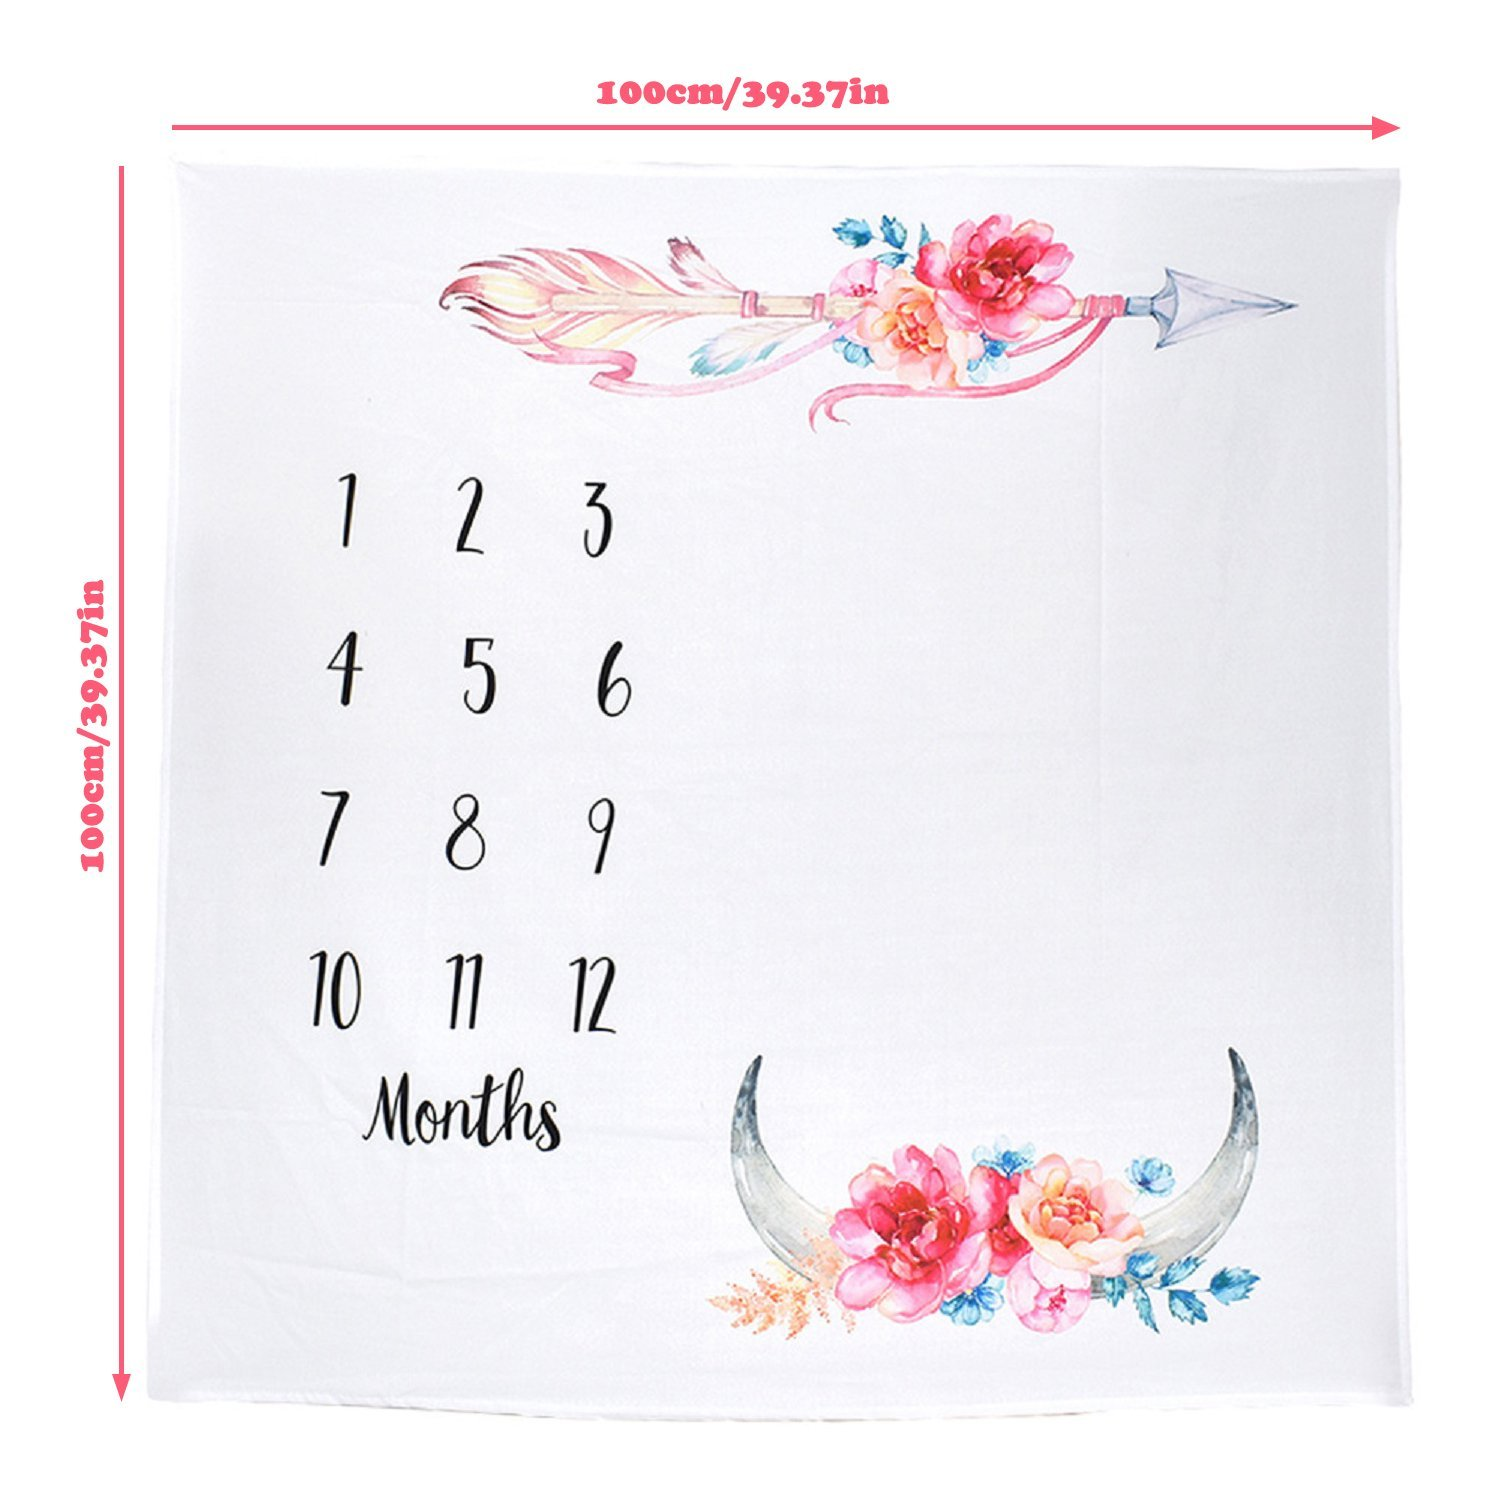 Baby Monthly Milestone Blanket Infant Photography Background Prop with Months Weeks First Year Growth Photo Shoots Props Mat with Wreath Frame Headbands Shower Gifts for Newborn Boy Girl Arrow